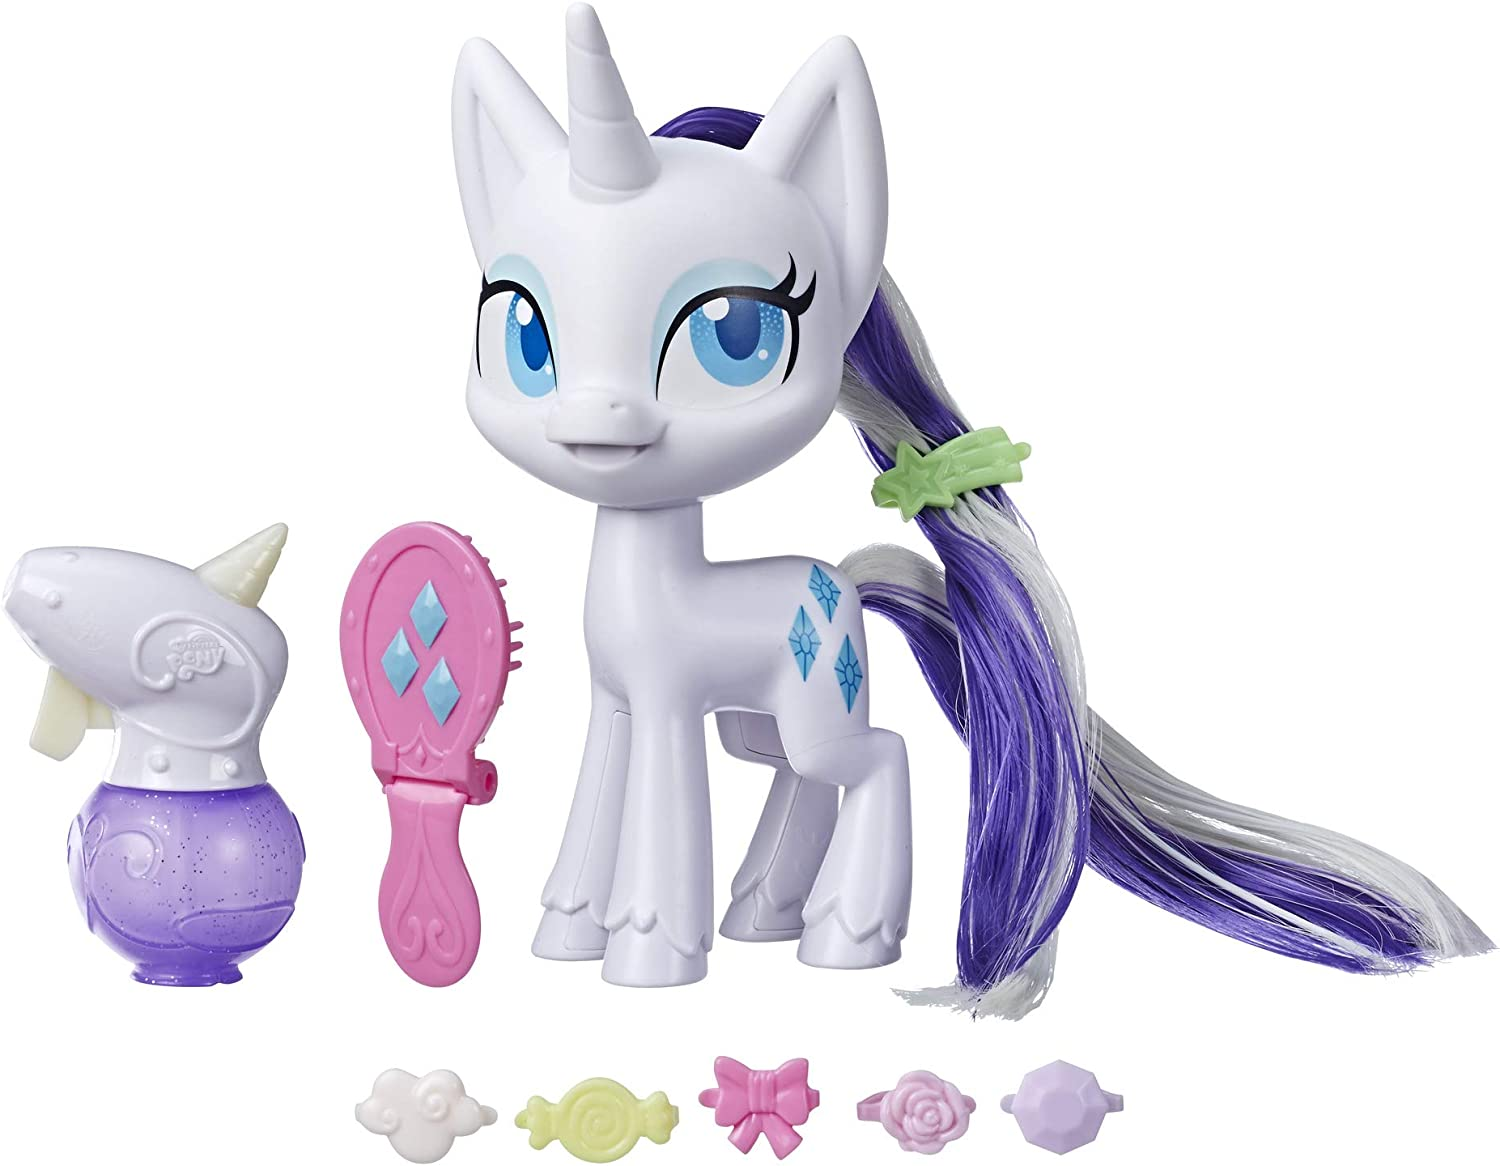 - Amazon.com: My Little Pony Magical Mane Rarity Toy -- 6.5